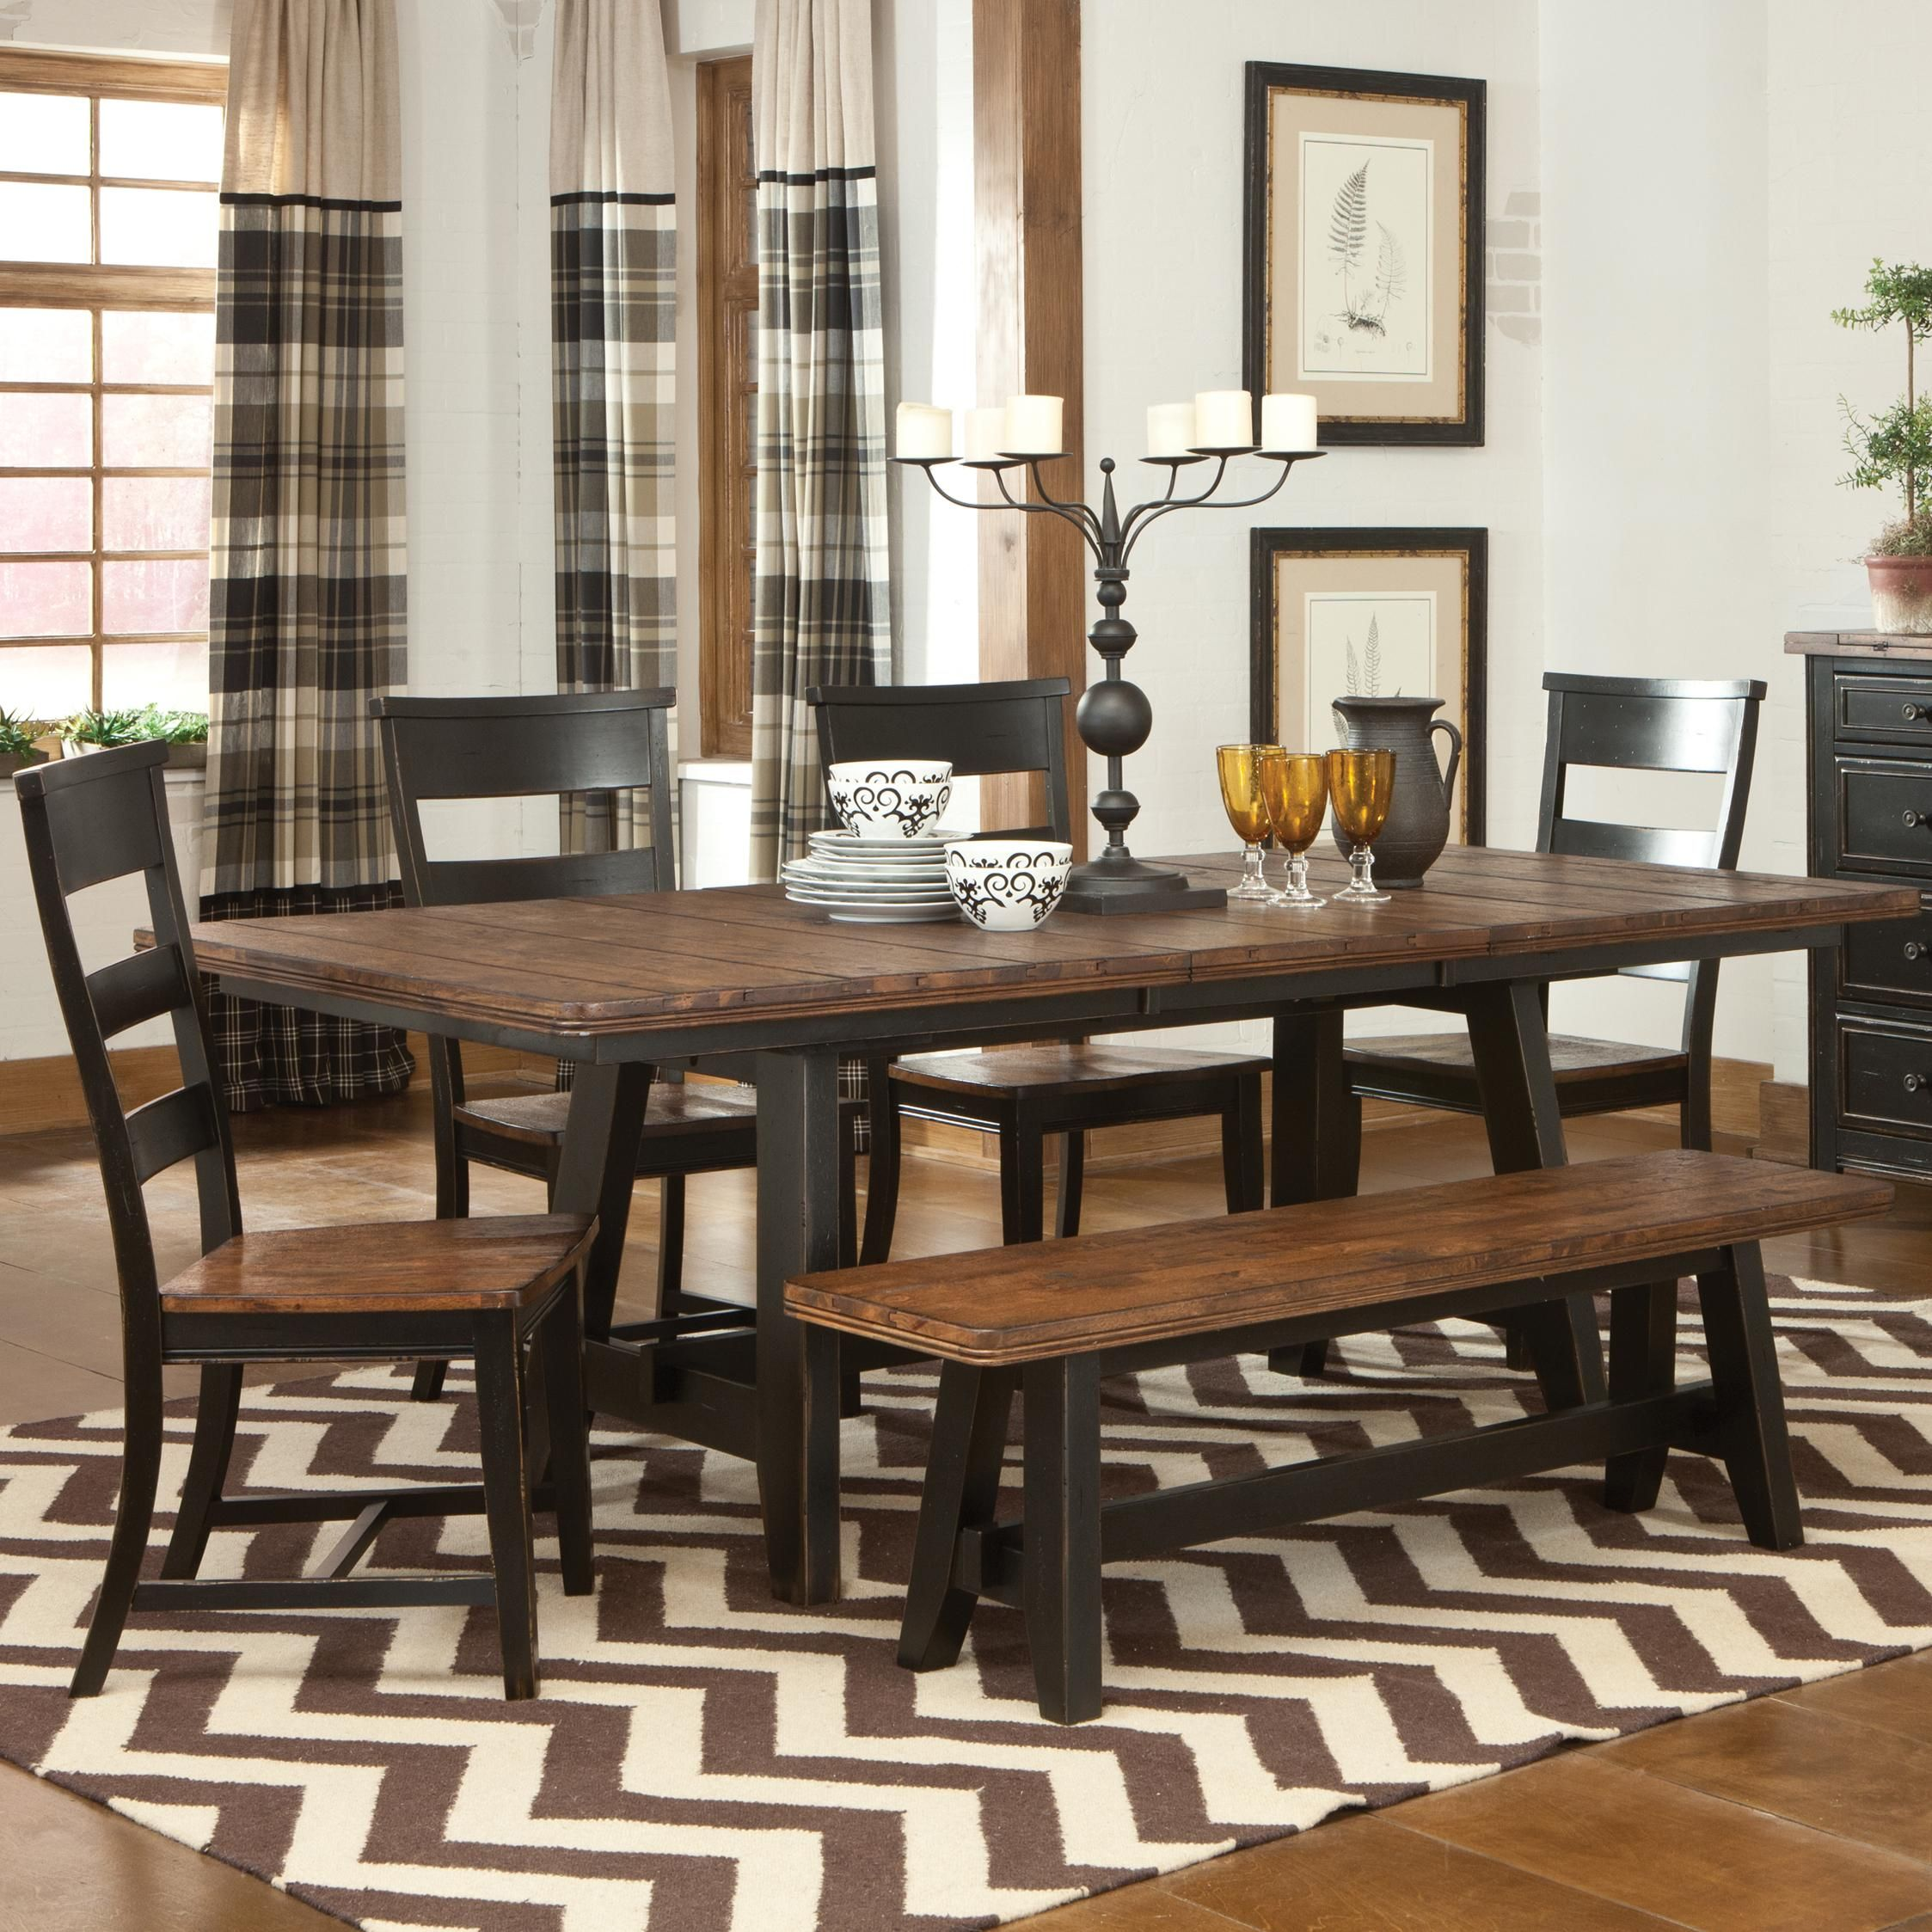 Picture of Most fortable Dining Chairs for Your Longer Dining